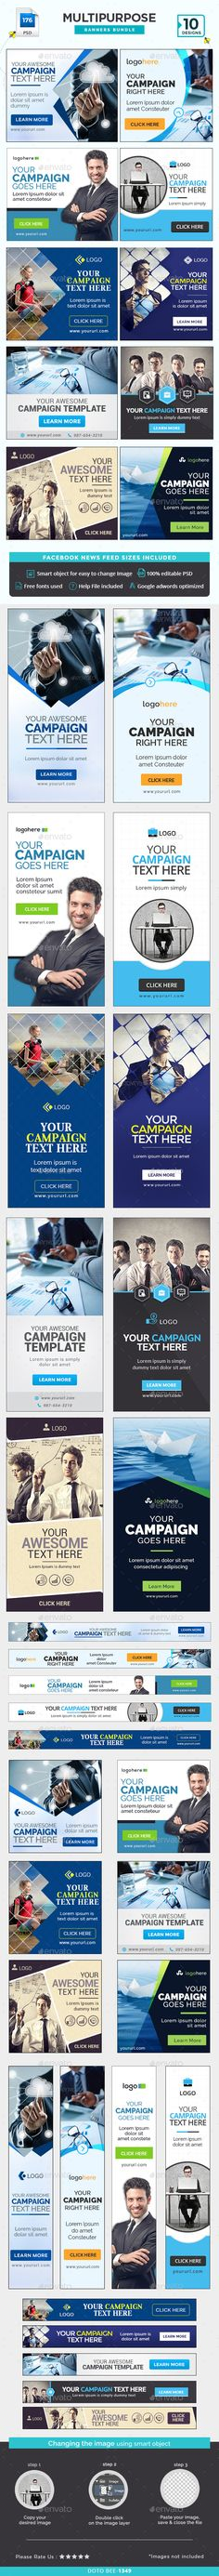 Banners & Ad Templates from GraphicRiver Web Design Trends, Ad Design, Graphic Design, Banner Template, Web Banner, Mailer Design, Display Ads, Social Media Design, Social Media Graphics